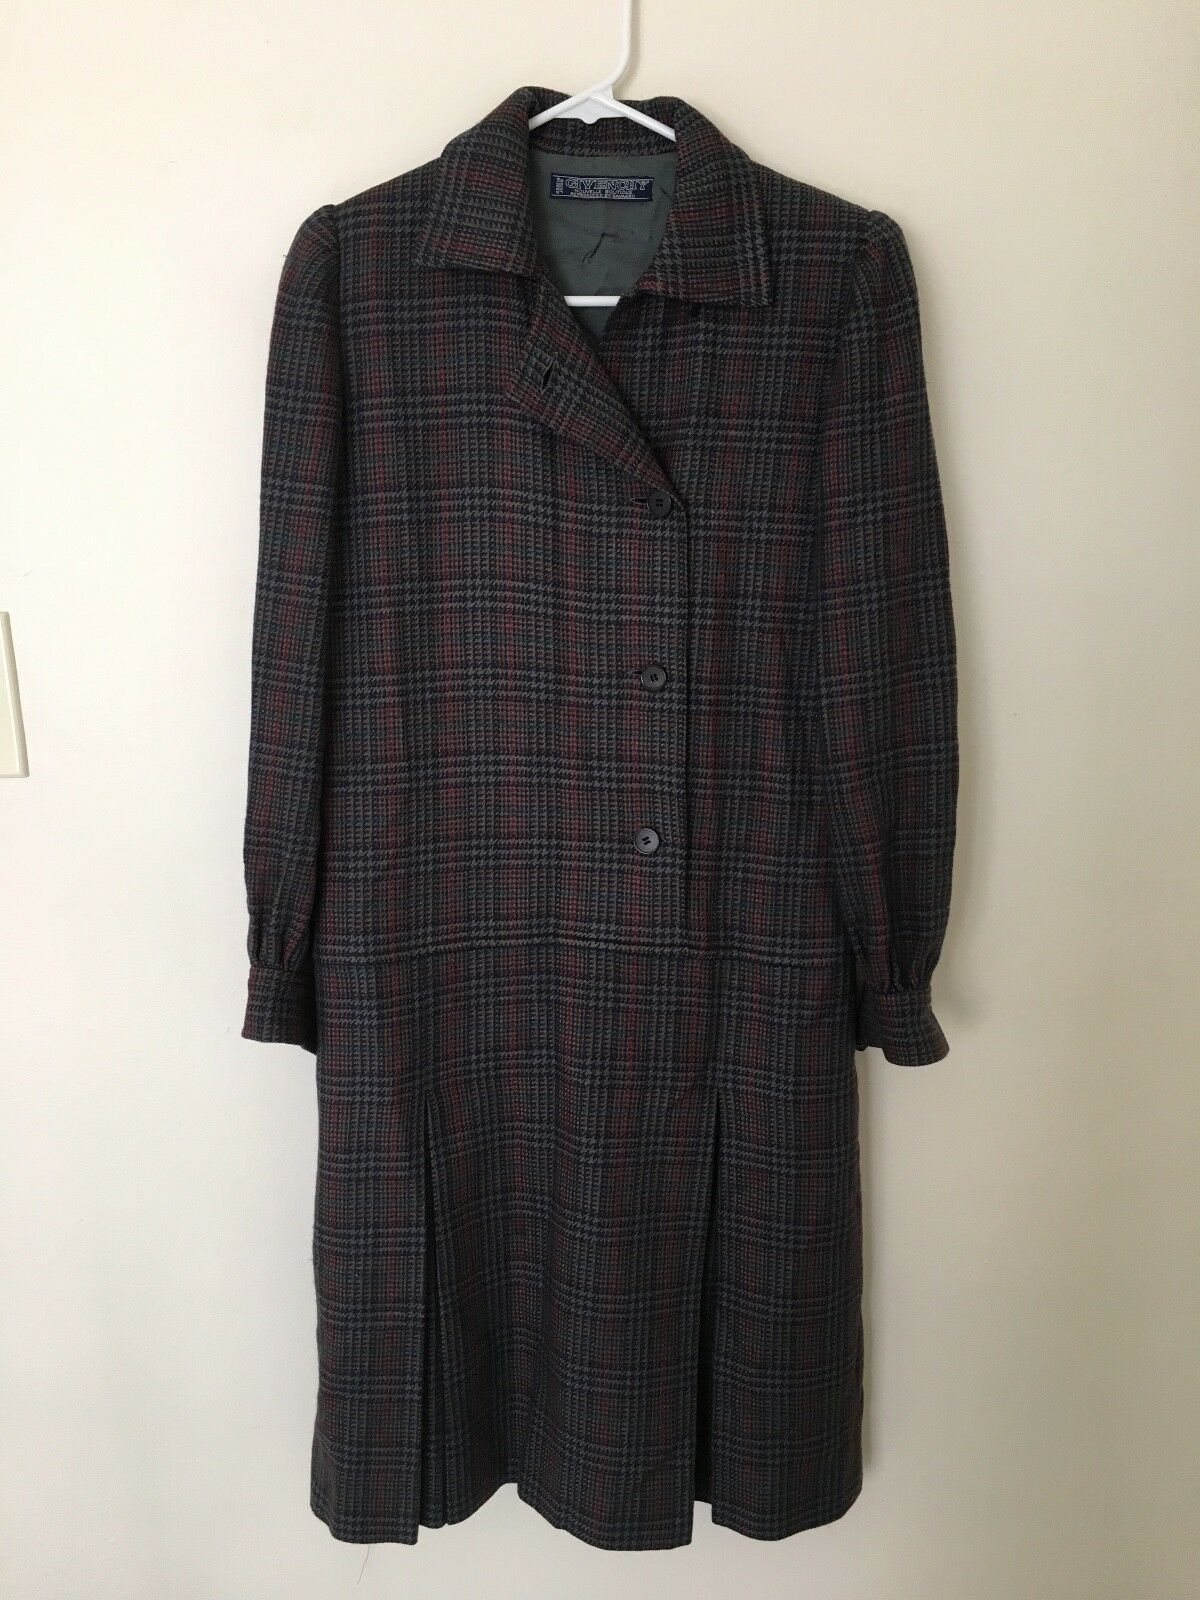 Vintage GIVENCHY Grey Gingham Wool Dress with buttons, Japan Size 8 (M)